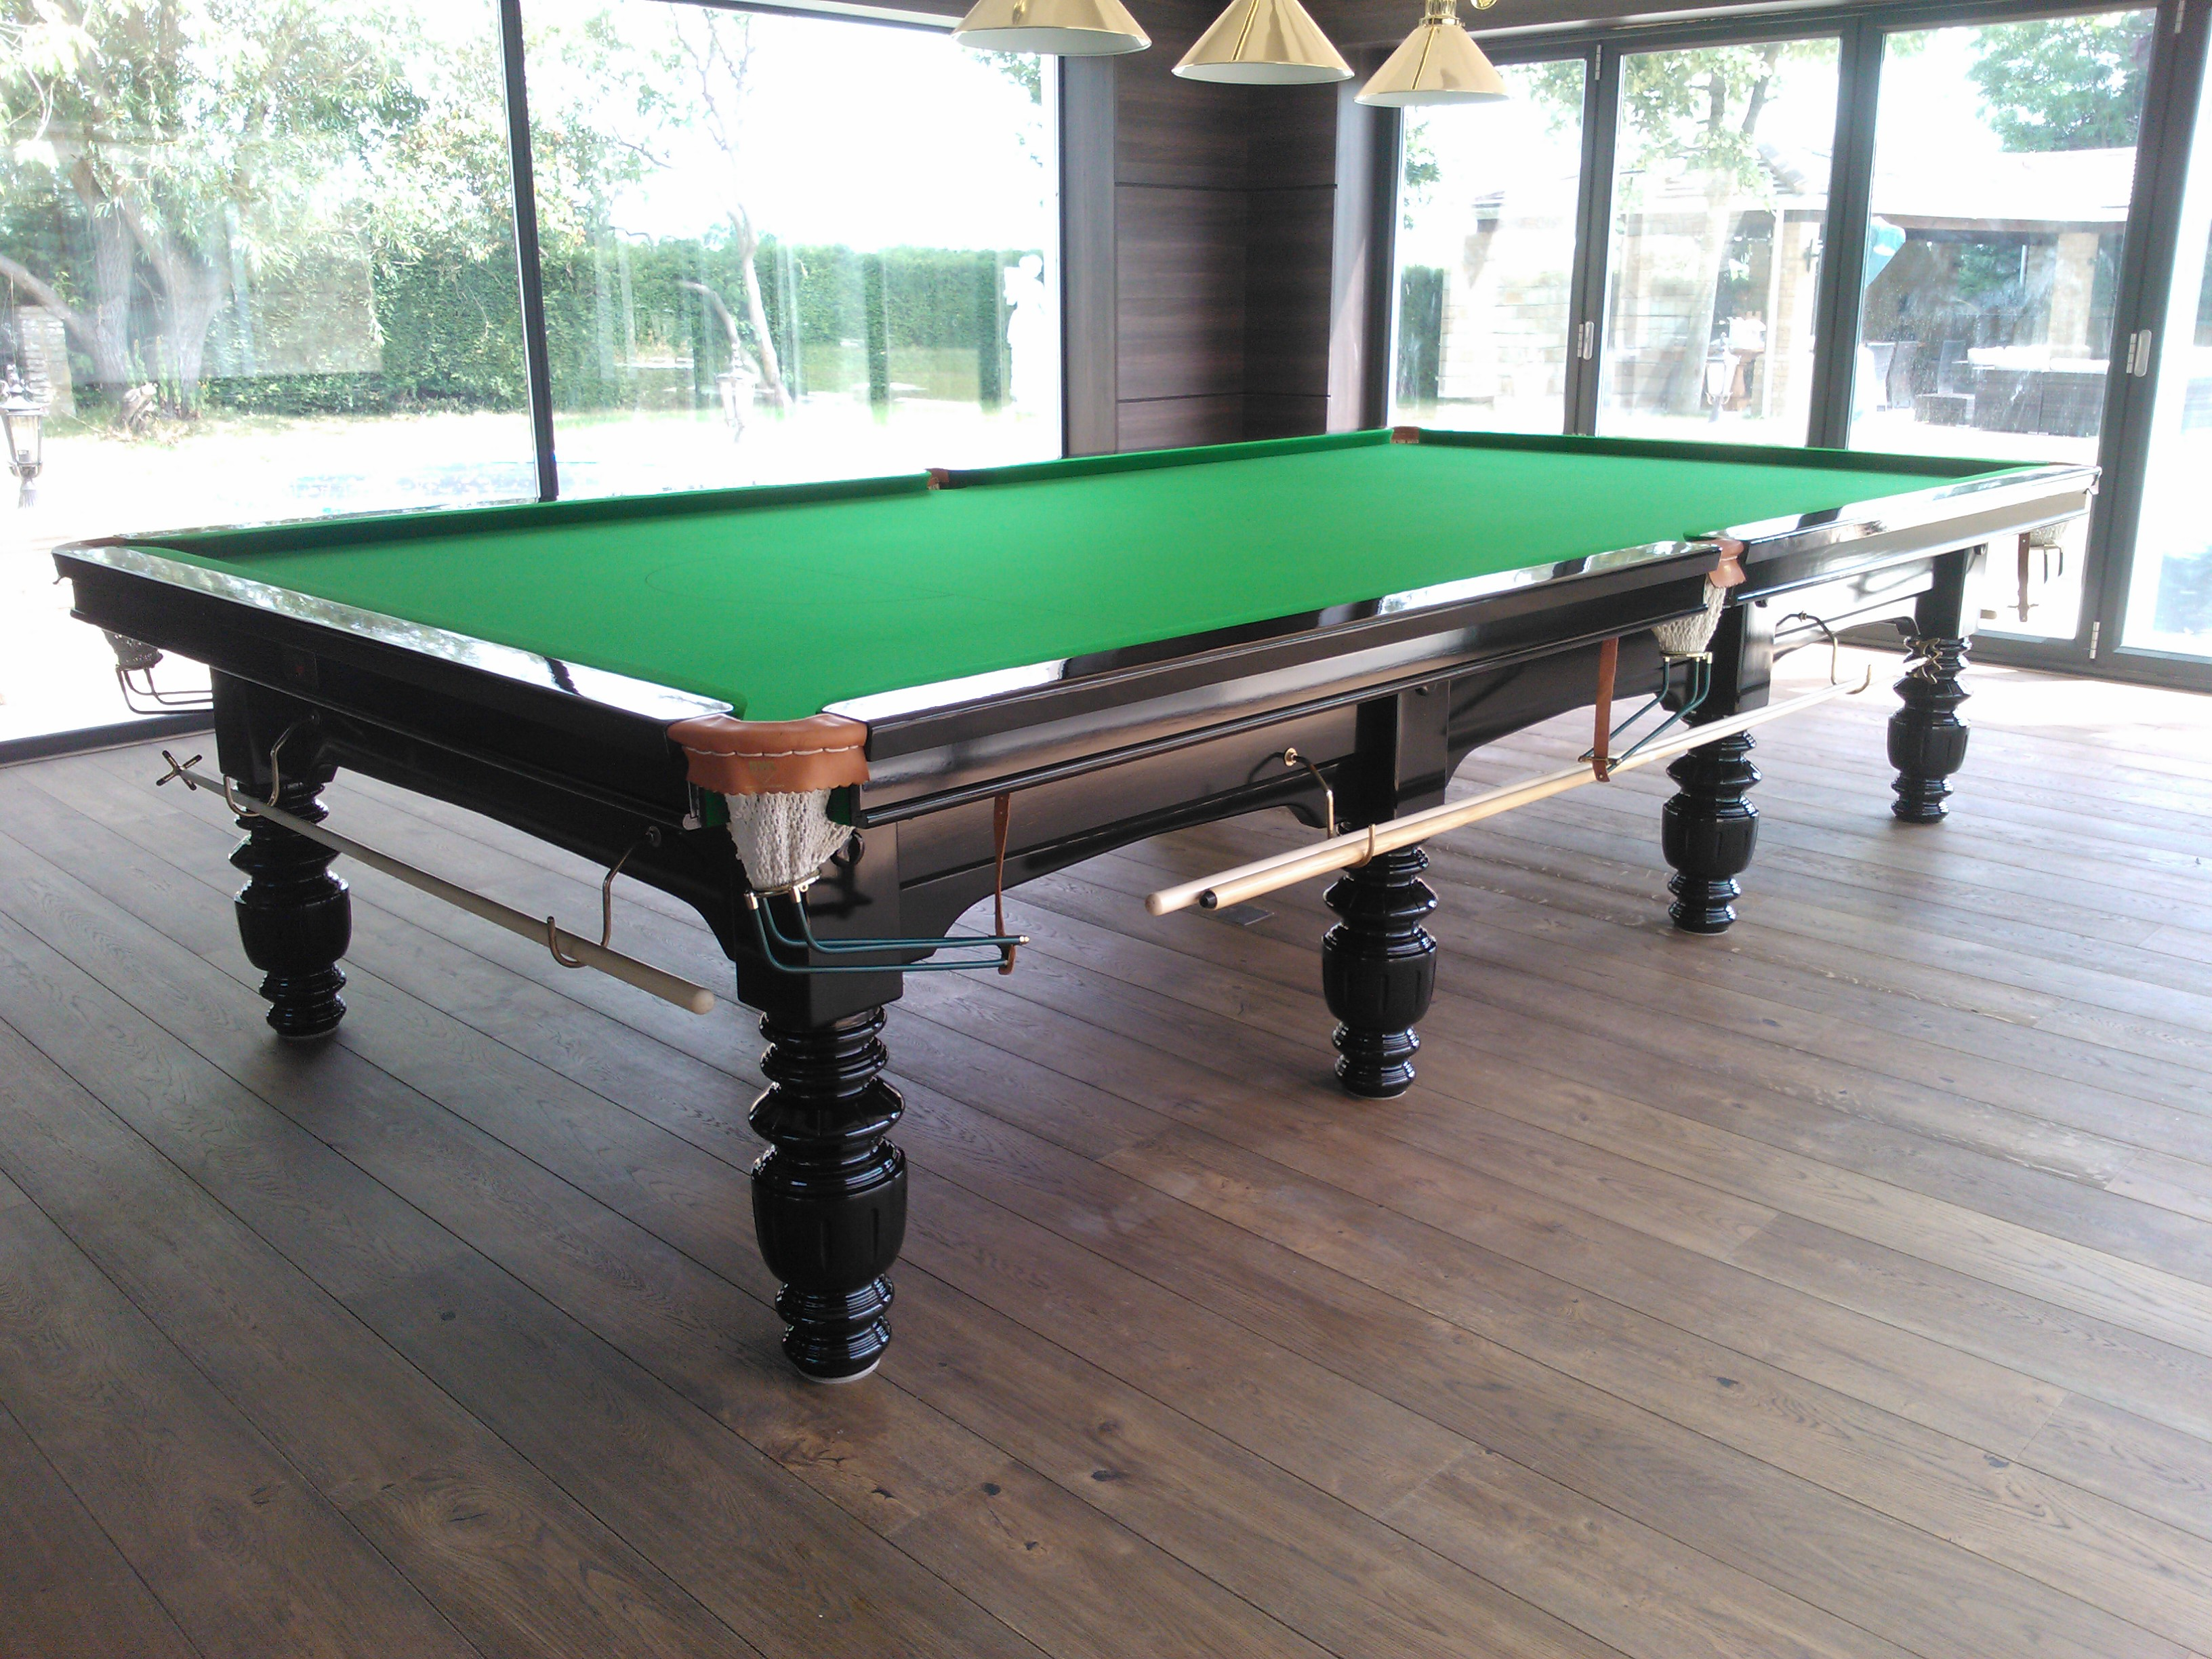 The Gallery The Handmade Snooker Table Company - Kensington pool table